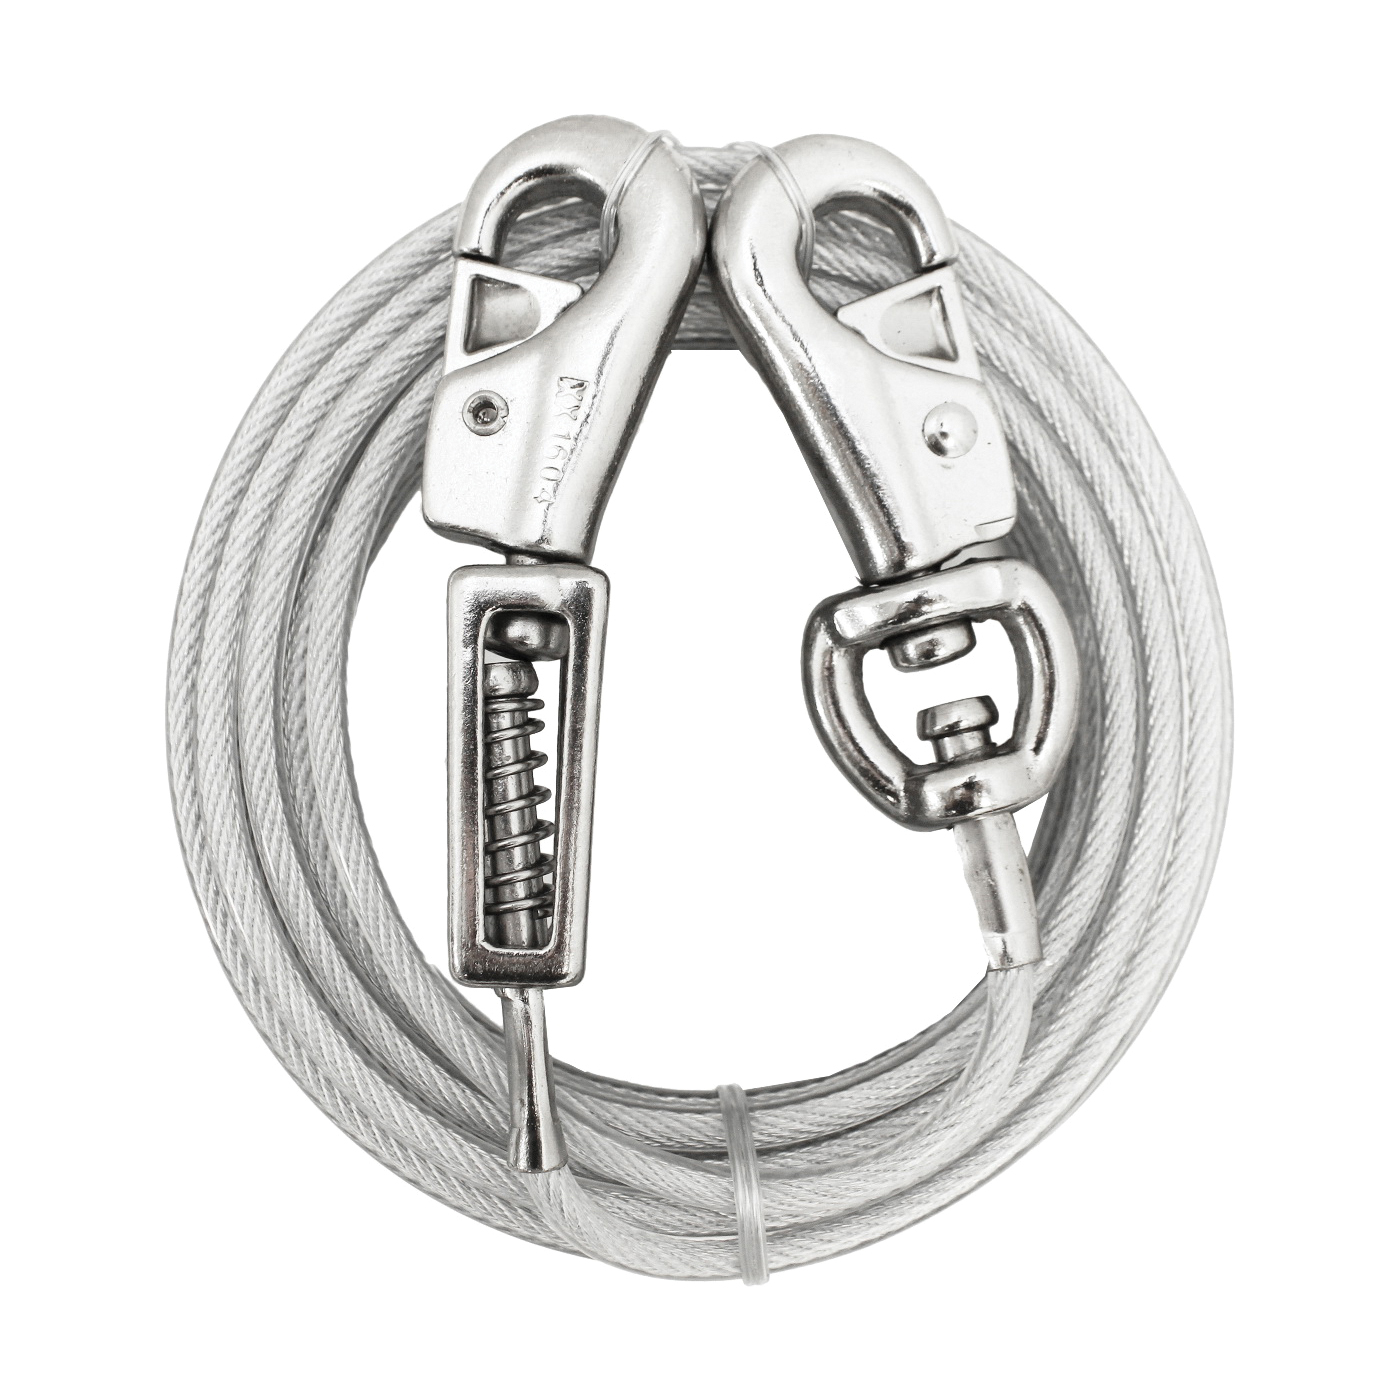 Picture of Boss Pet PDQ Q5715SPG99 Tie-Out with Spring, 15 ft L Belt/Cable, For: Extra Large Dogs Up to 125 lb